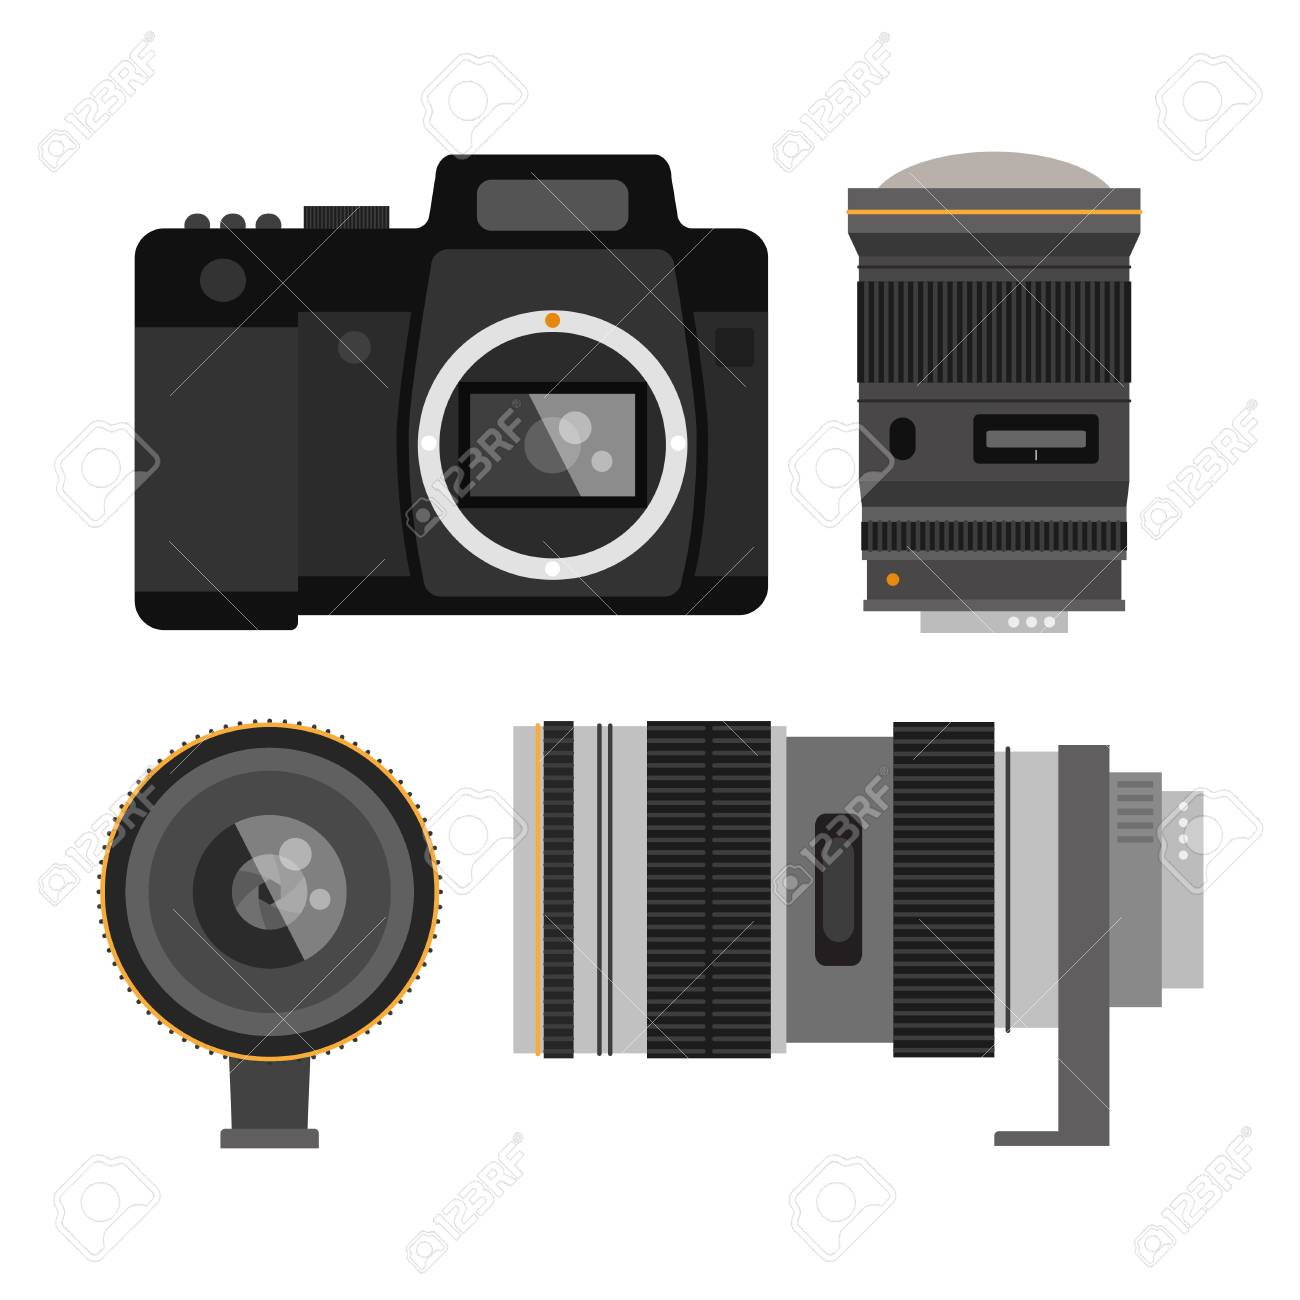 Camera Photo Optic Lenses Set On White Background Different Types Of Digital Cameras Objective Equipment Professional Look